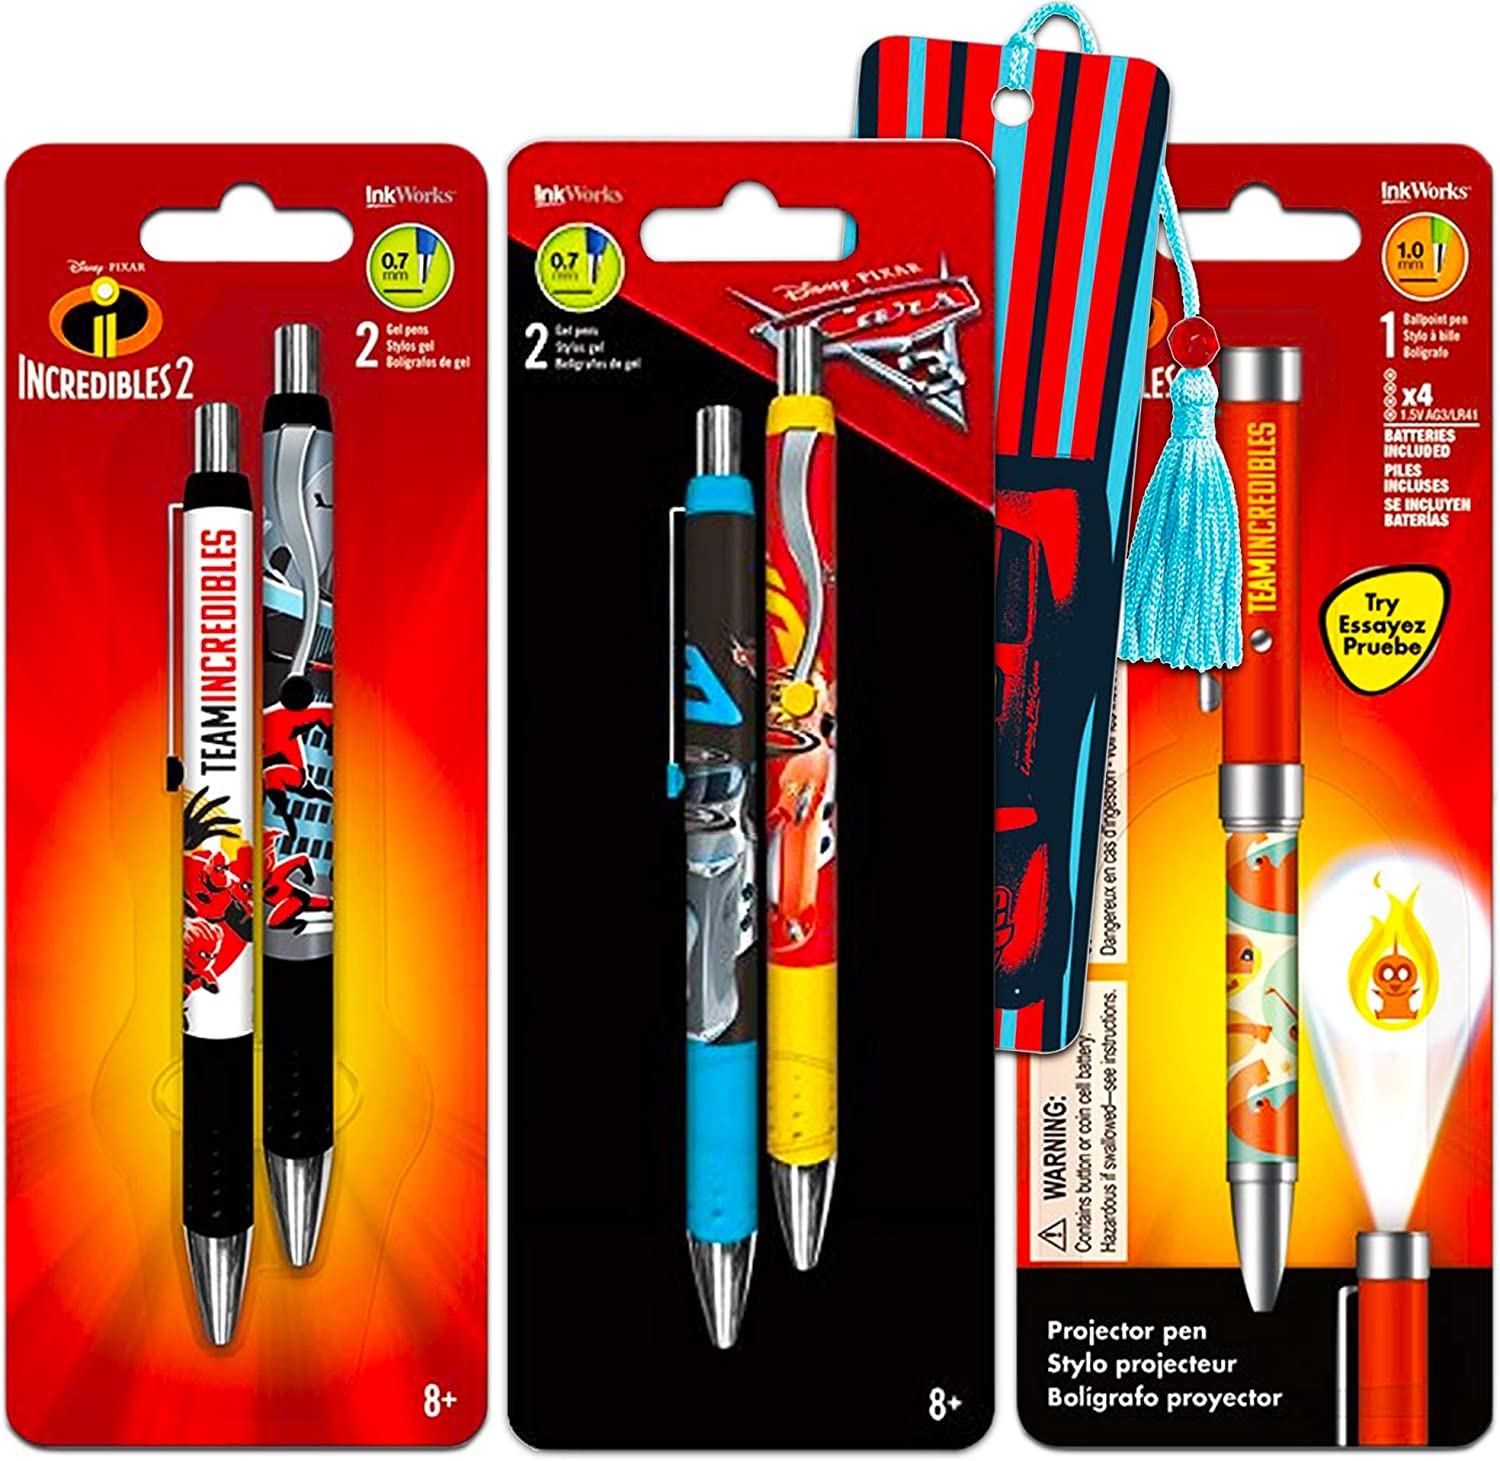 Disney Cars Incredibles Pens Pack - Bundle Includes 5 Pens and Bookmark (Disney Office and School Supplies)